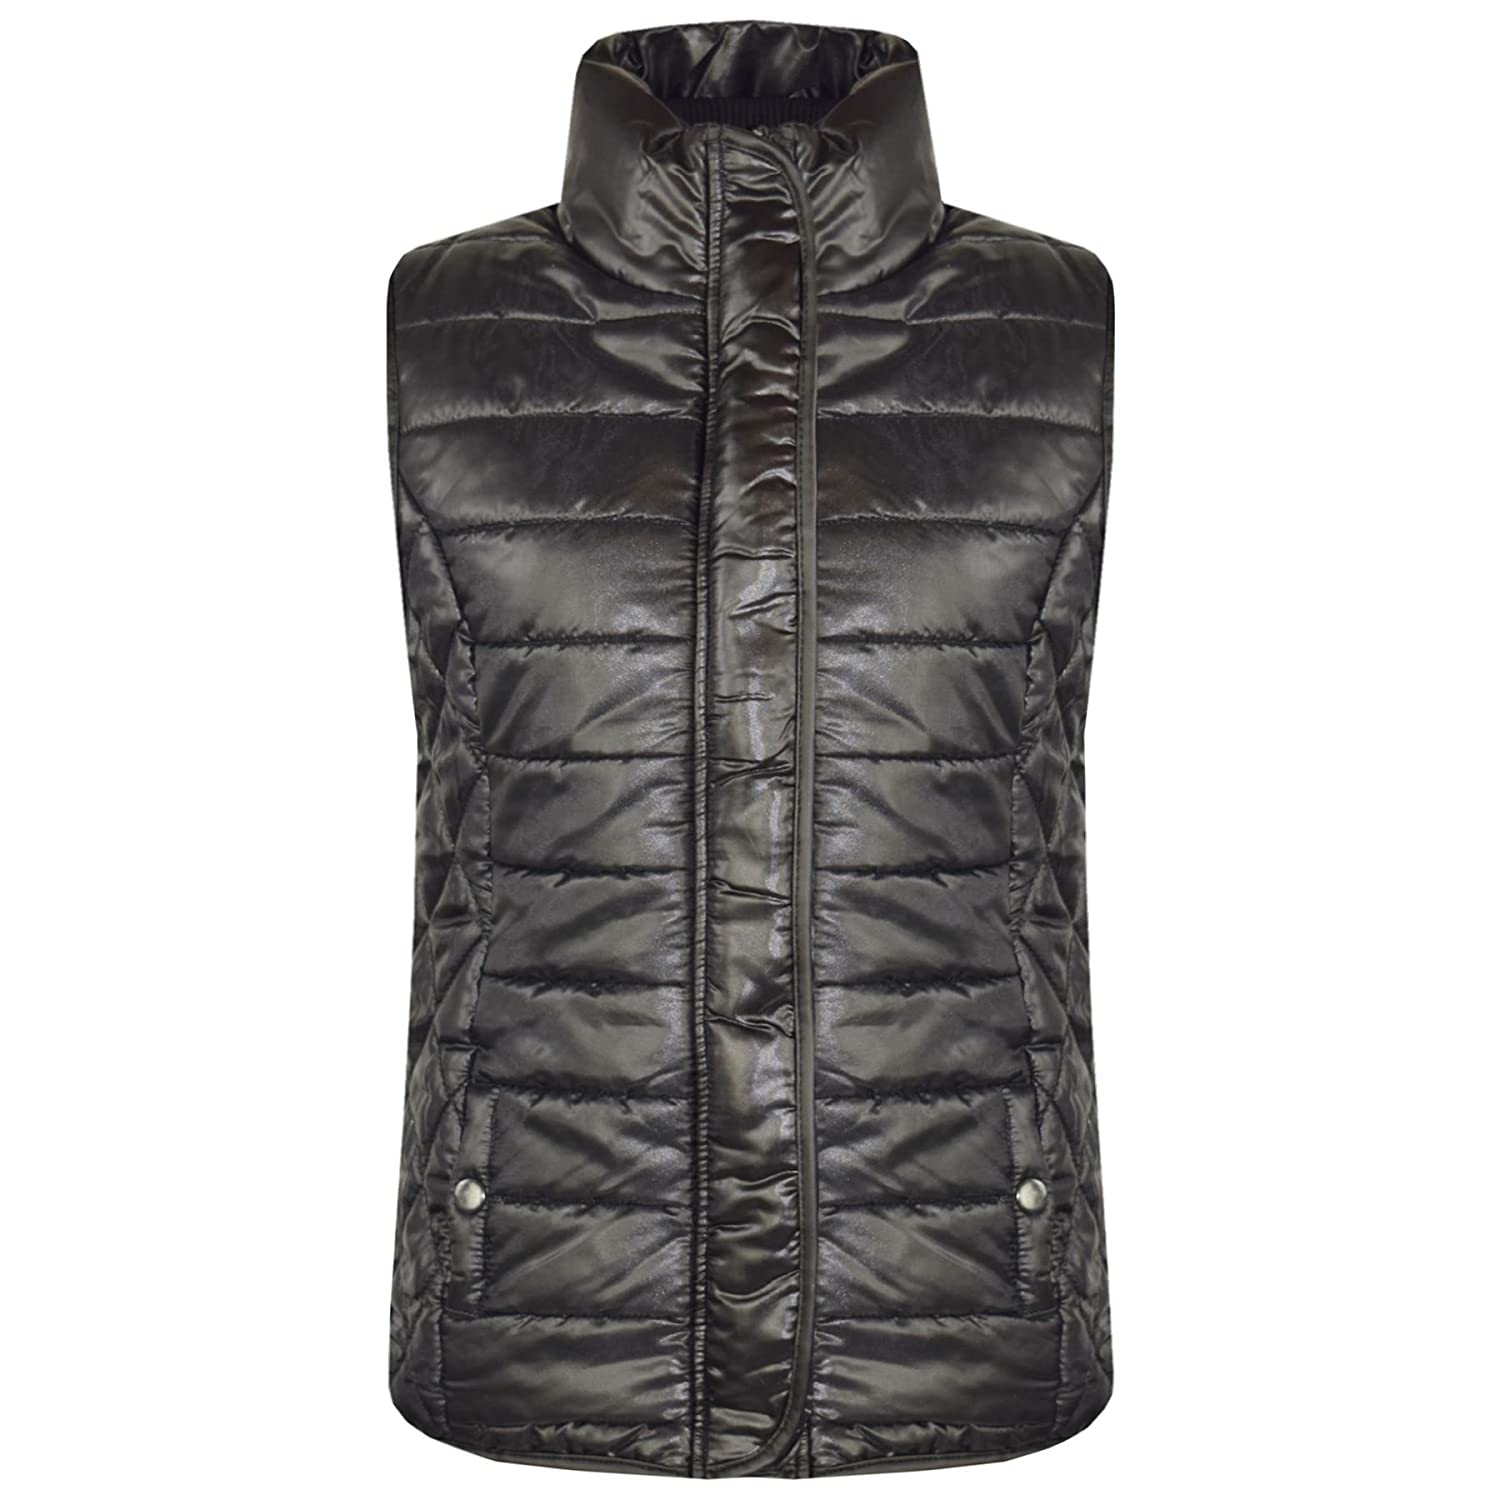 A2Z 4 Kids® Kids Girls Boys Jacket Designer's Black Wet Look Sleeveless Padded Lined Quilted Gilet Bodywarmer Fashion Jackets Age 5 6 7 8 9 10 11 12 13 Years